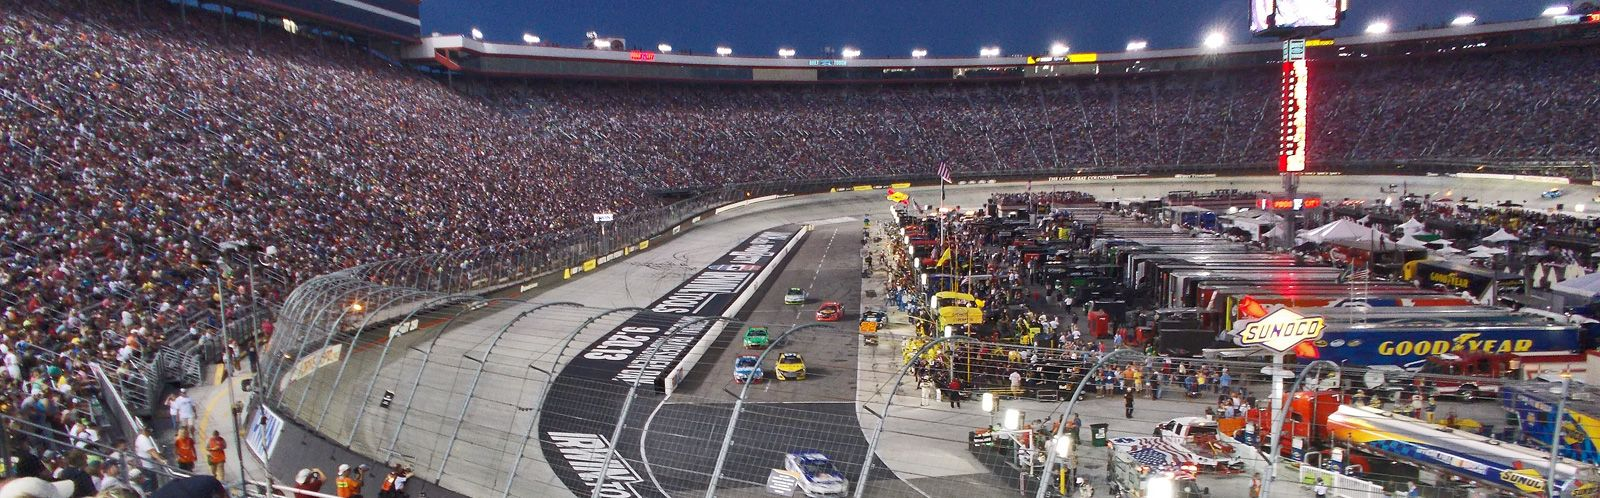 The 2014 #NASCAR season is right around the corner. Start booking your trips with Action Jackson today! With our new website, you can now book your tours online!